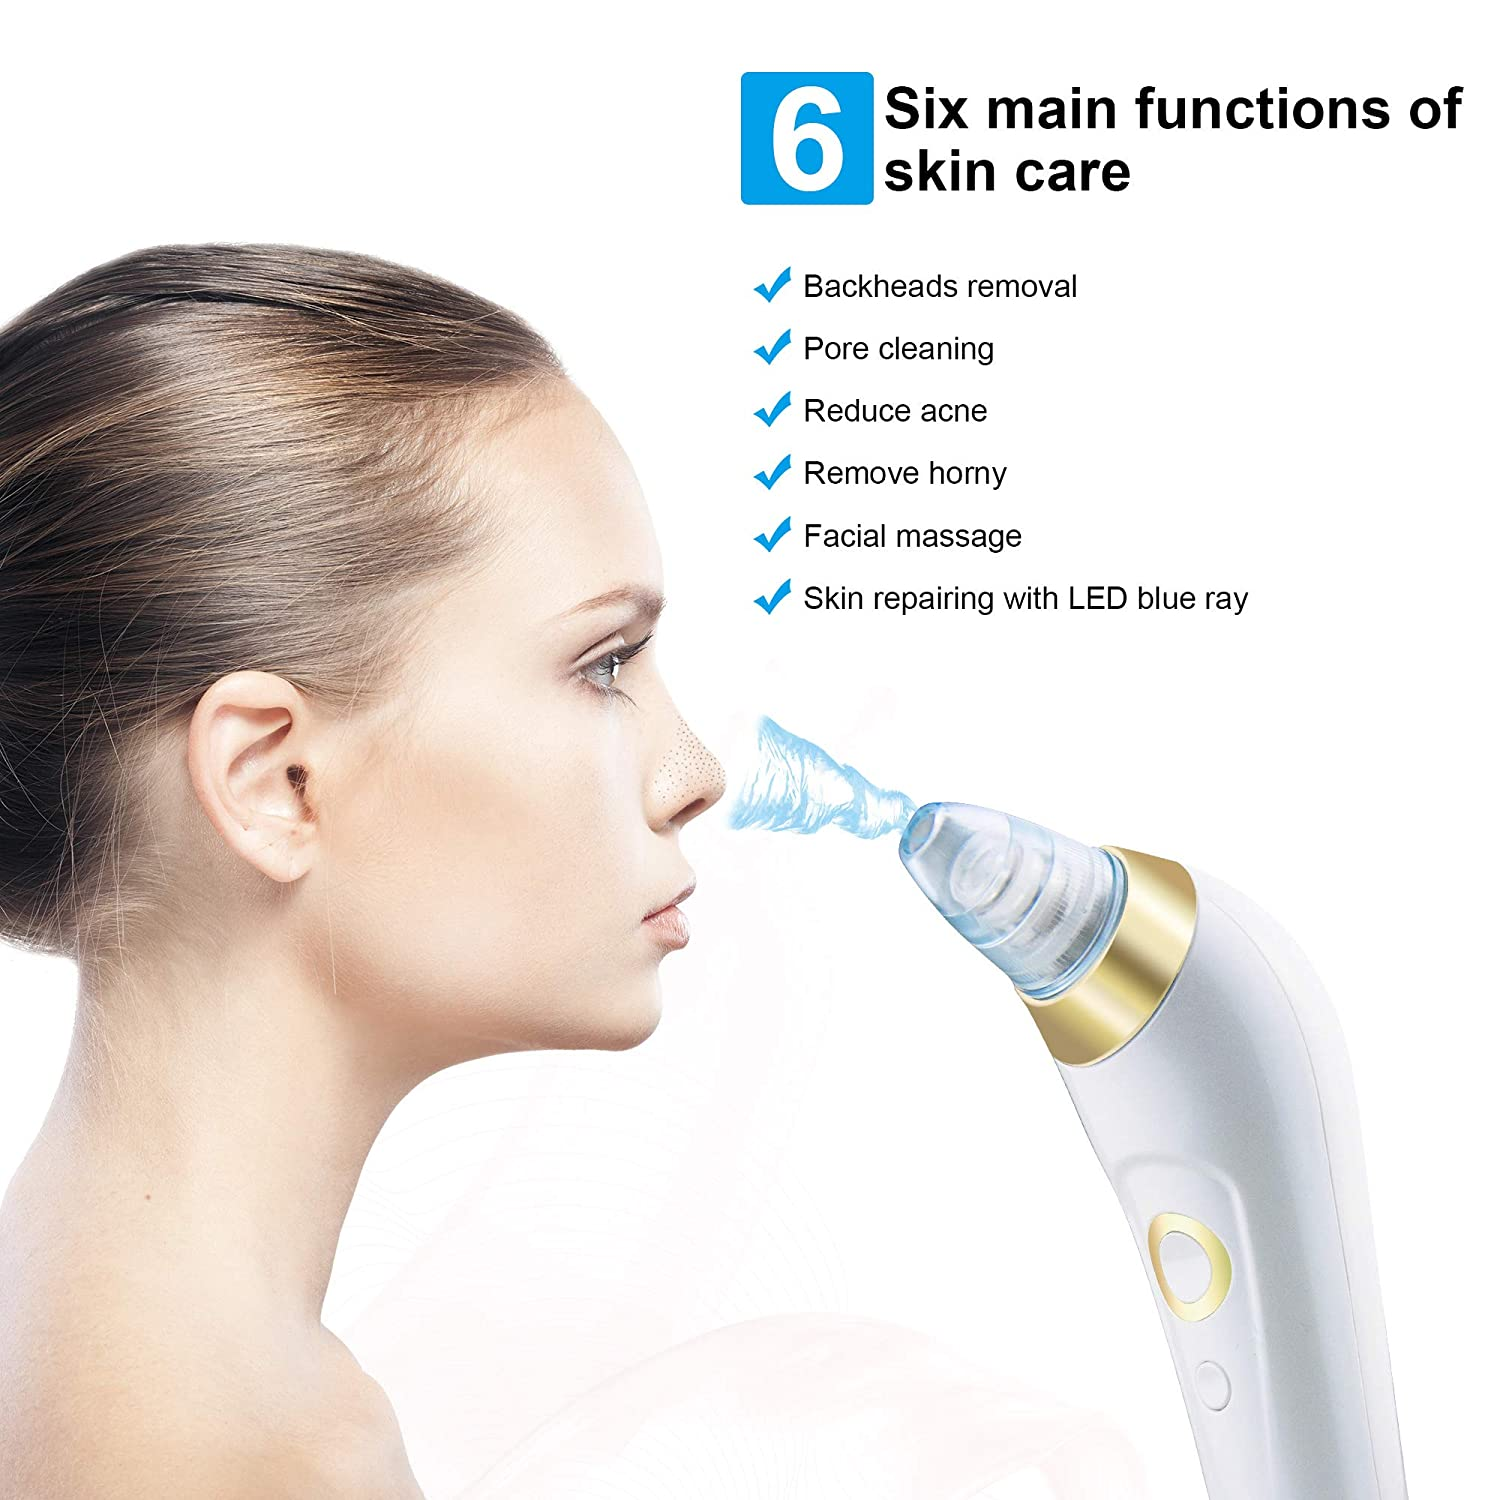 Blackhead Remover Pore Vacuum, AVEYRONA Electric Vacuum Facial Pore Cleanser, Acne Comedone Extractor with 3 Adjustable Suction Power and 5 Suction Heads, USB Rechargeable White